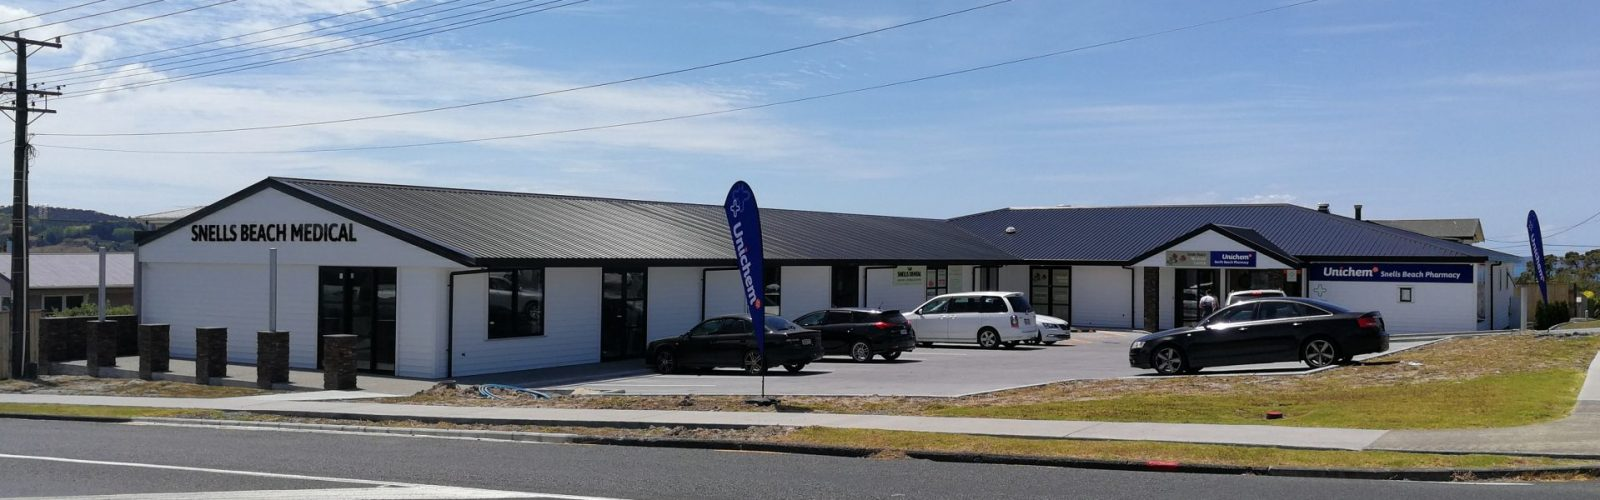 Snell's Beach Medical Centre - Header Image